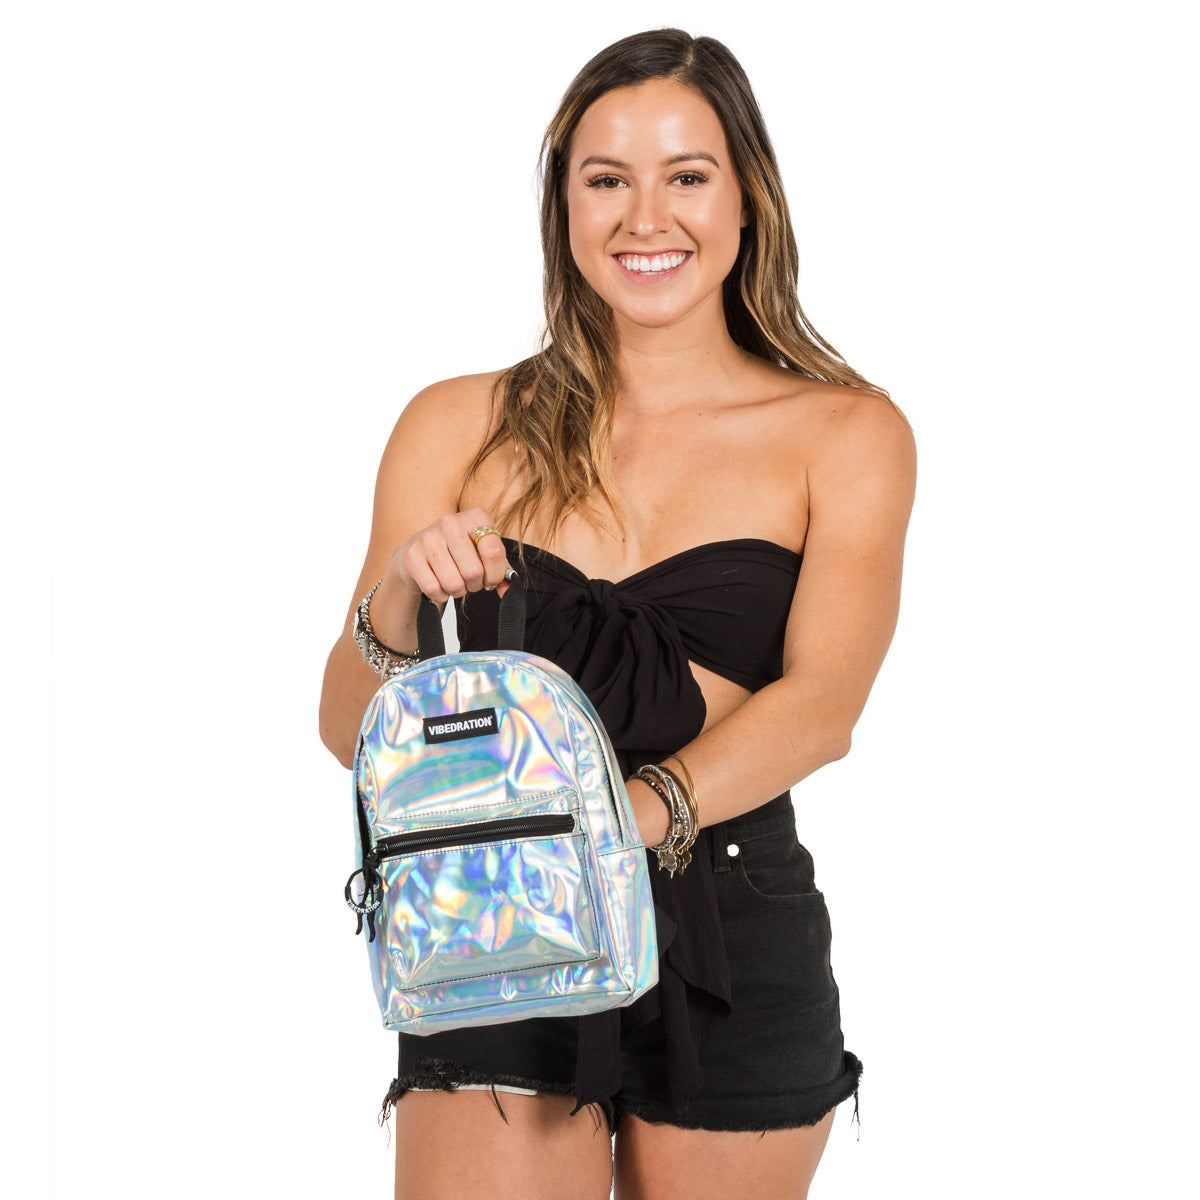 Holographic Silver Mini Backpack for events